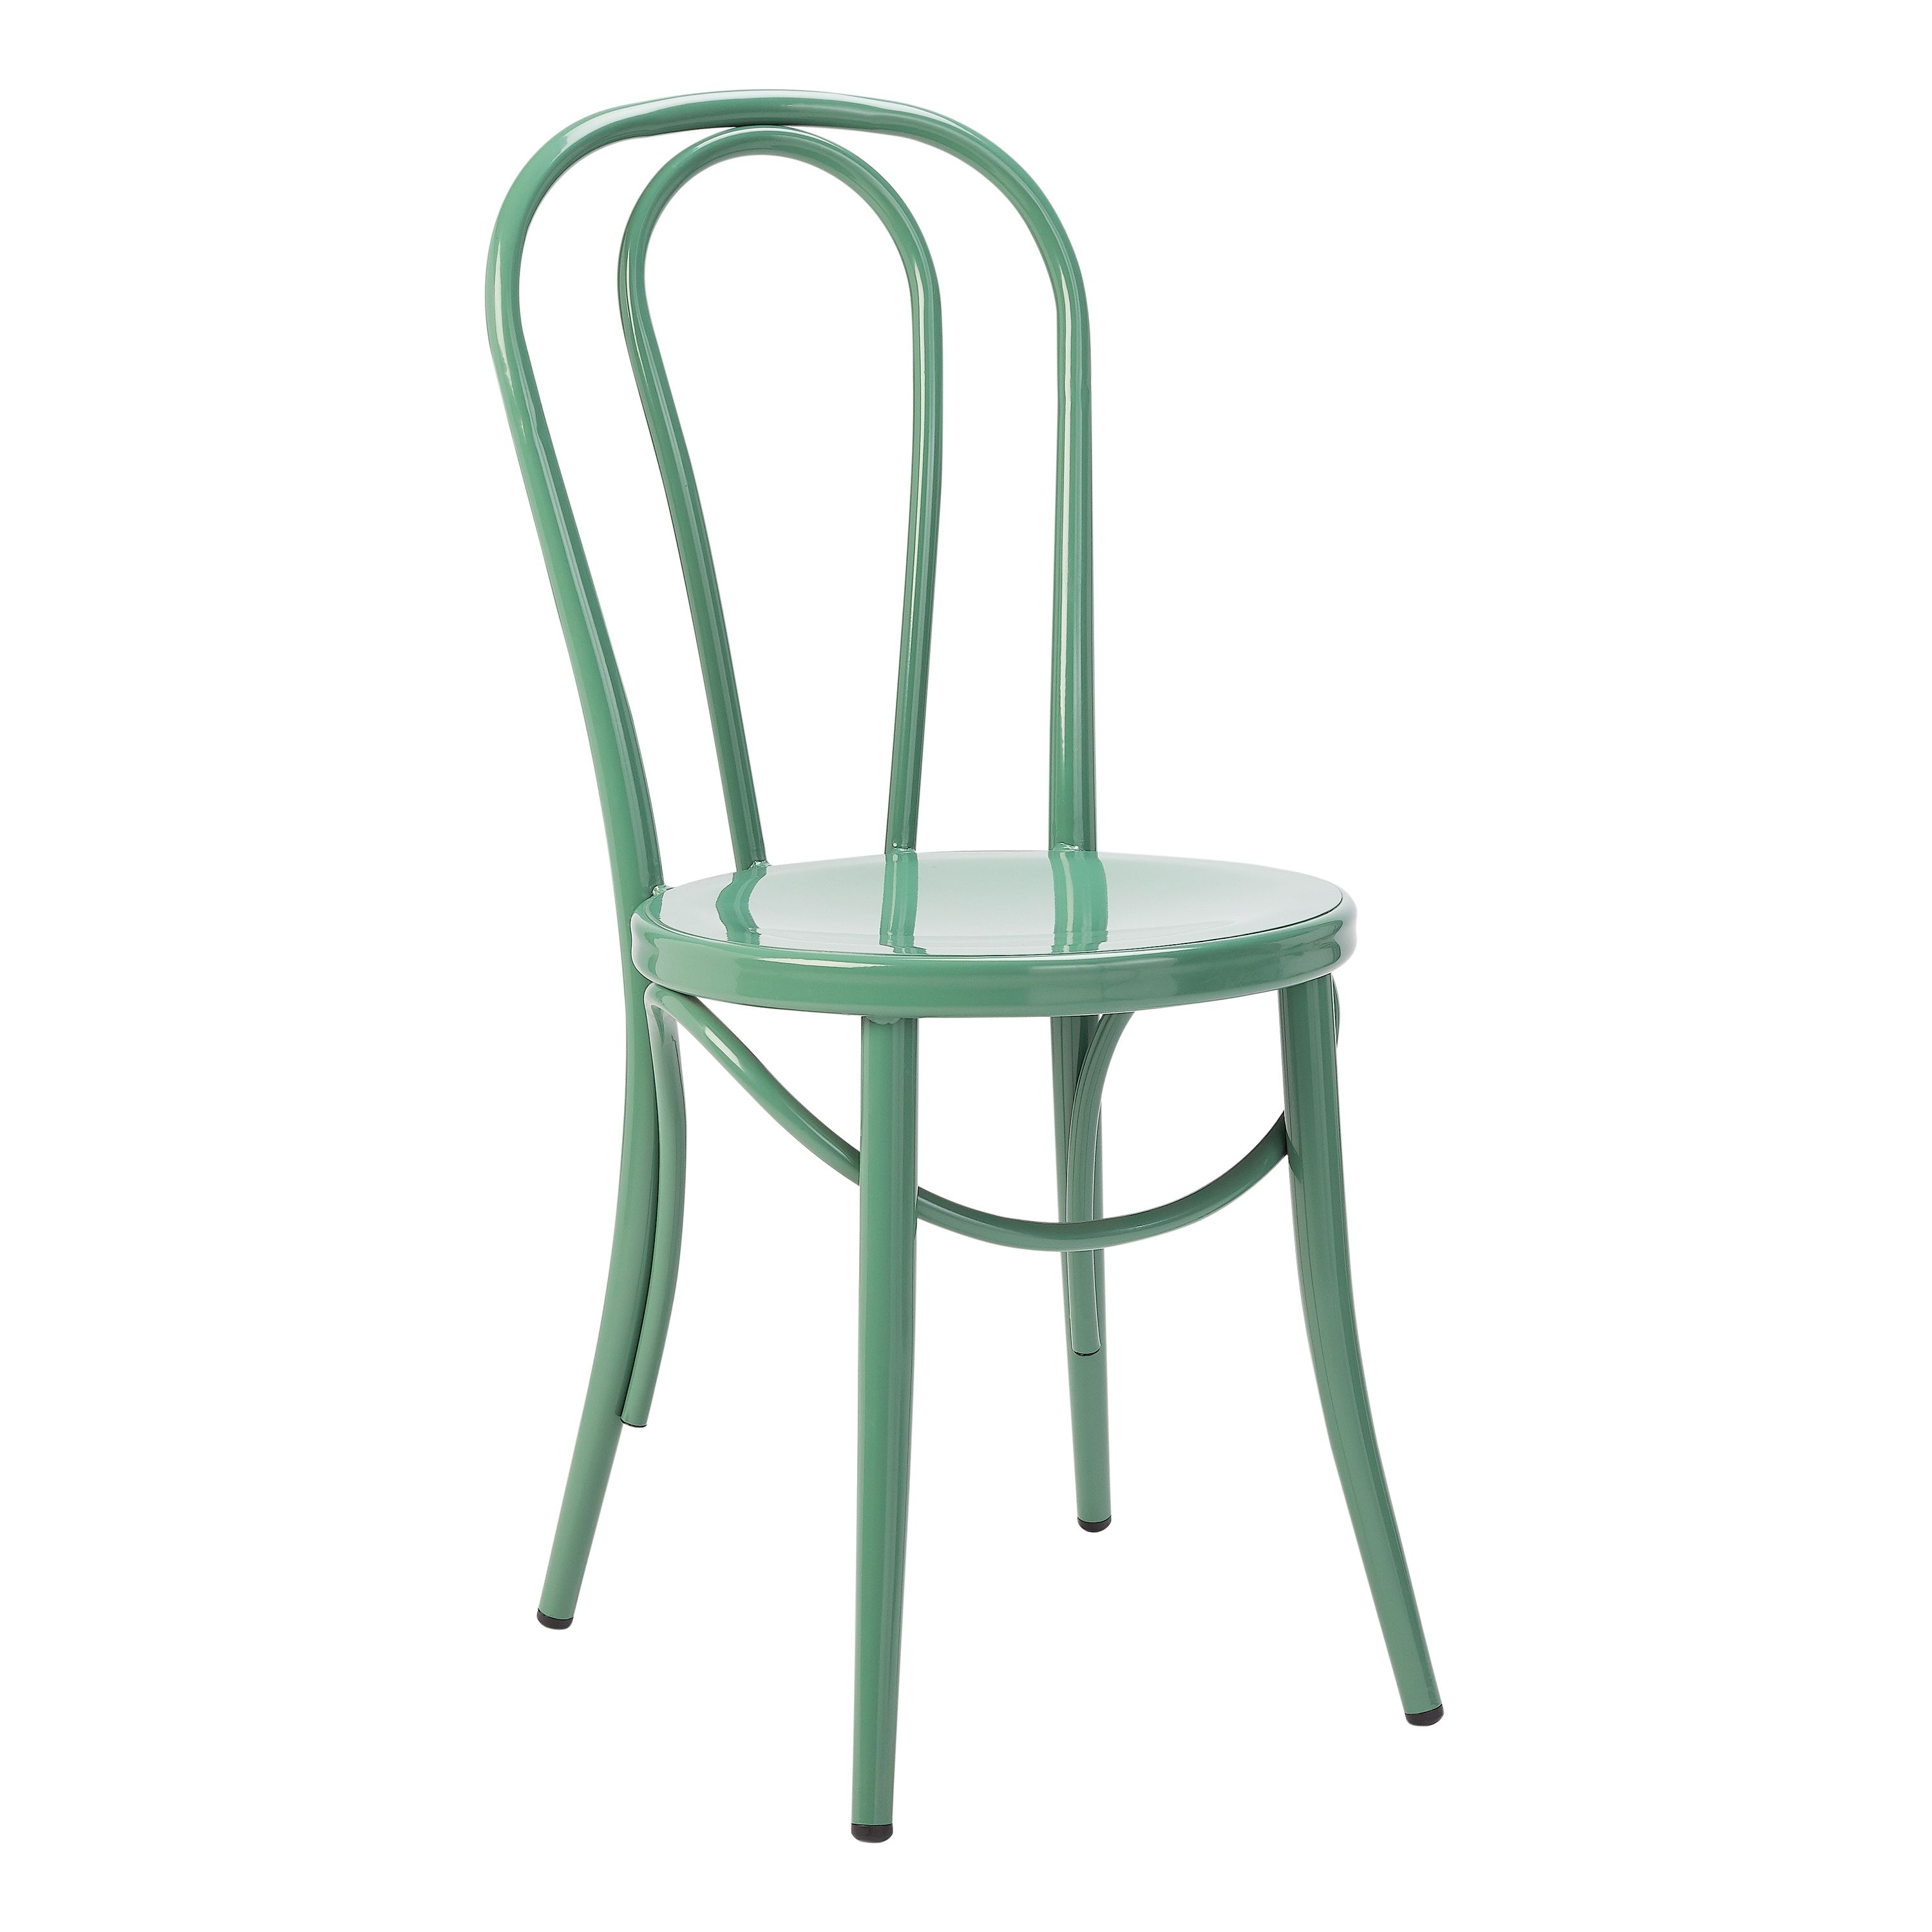 Better Homes Gardens Arabella Dining Chair Set Of Two Multiple Colors Walmart Com In 2020 Metal Chairs Dining Chairs Chair